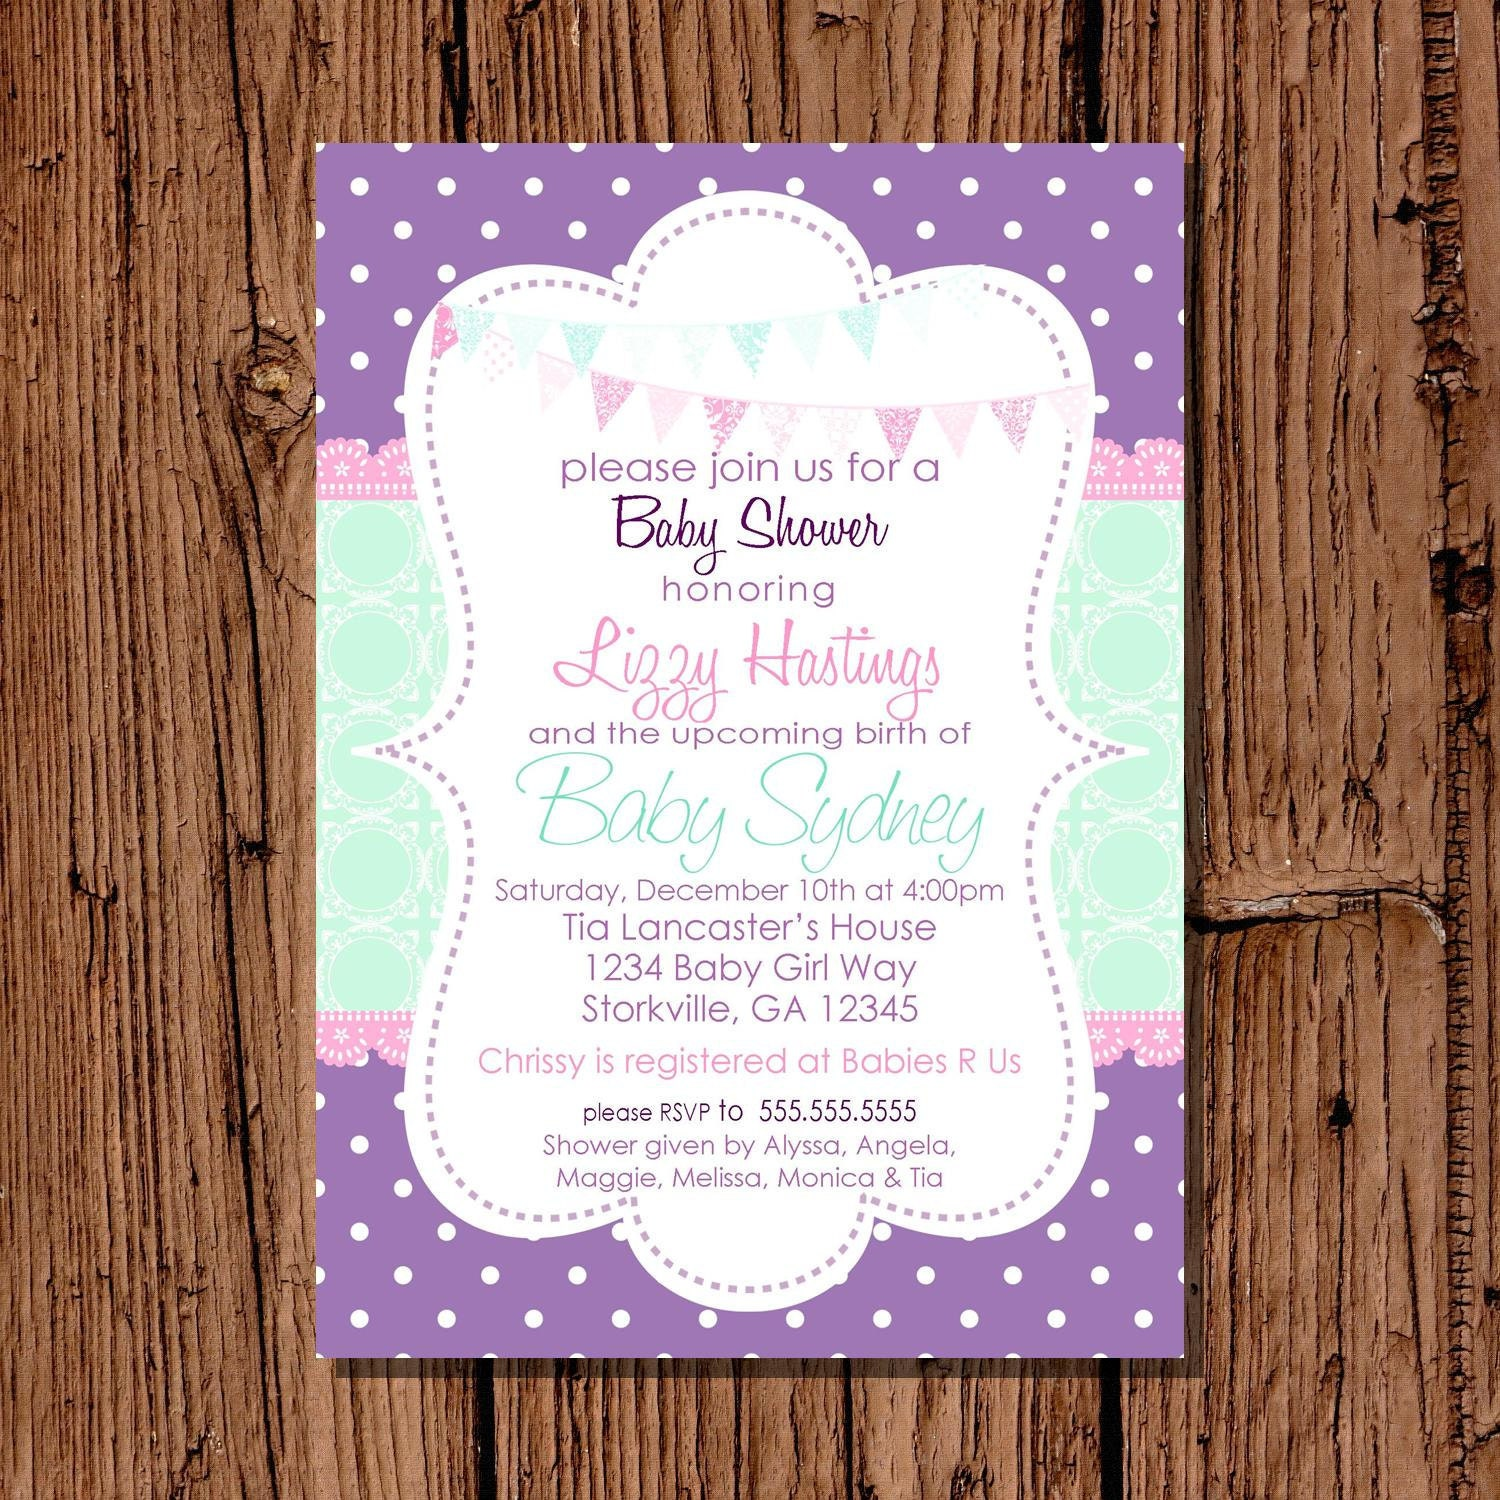 Owl Baby Shower Invitations Etsy – Baby Shower Invitations Samples Free